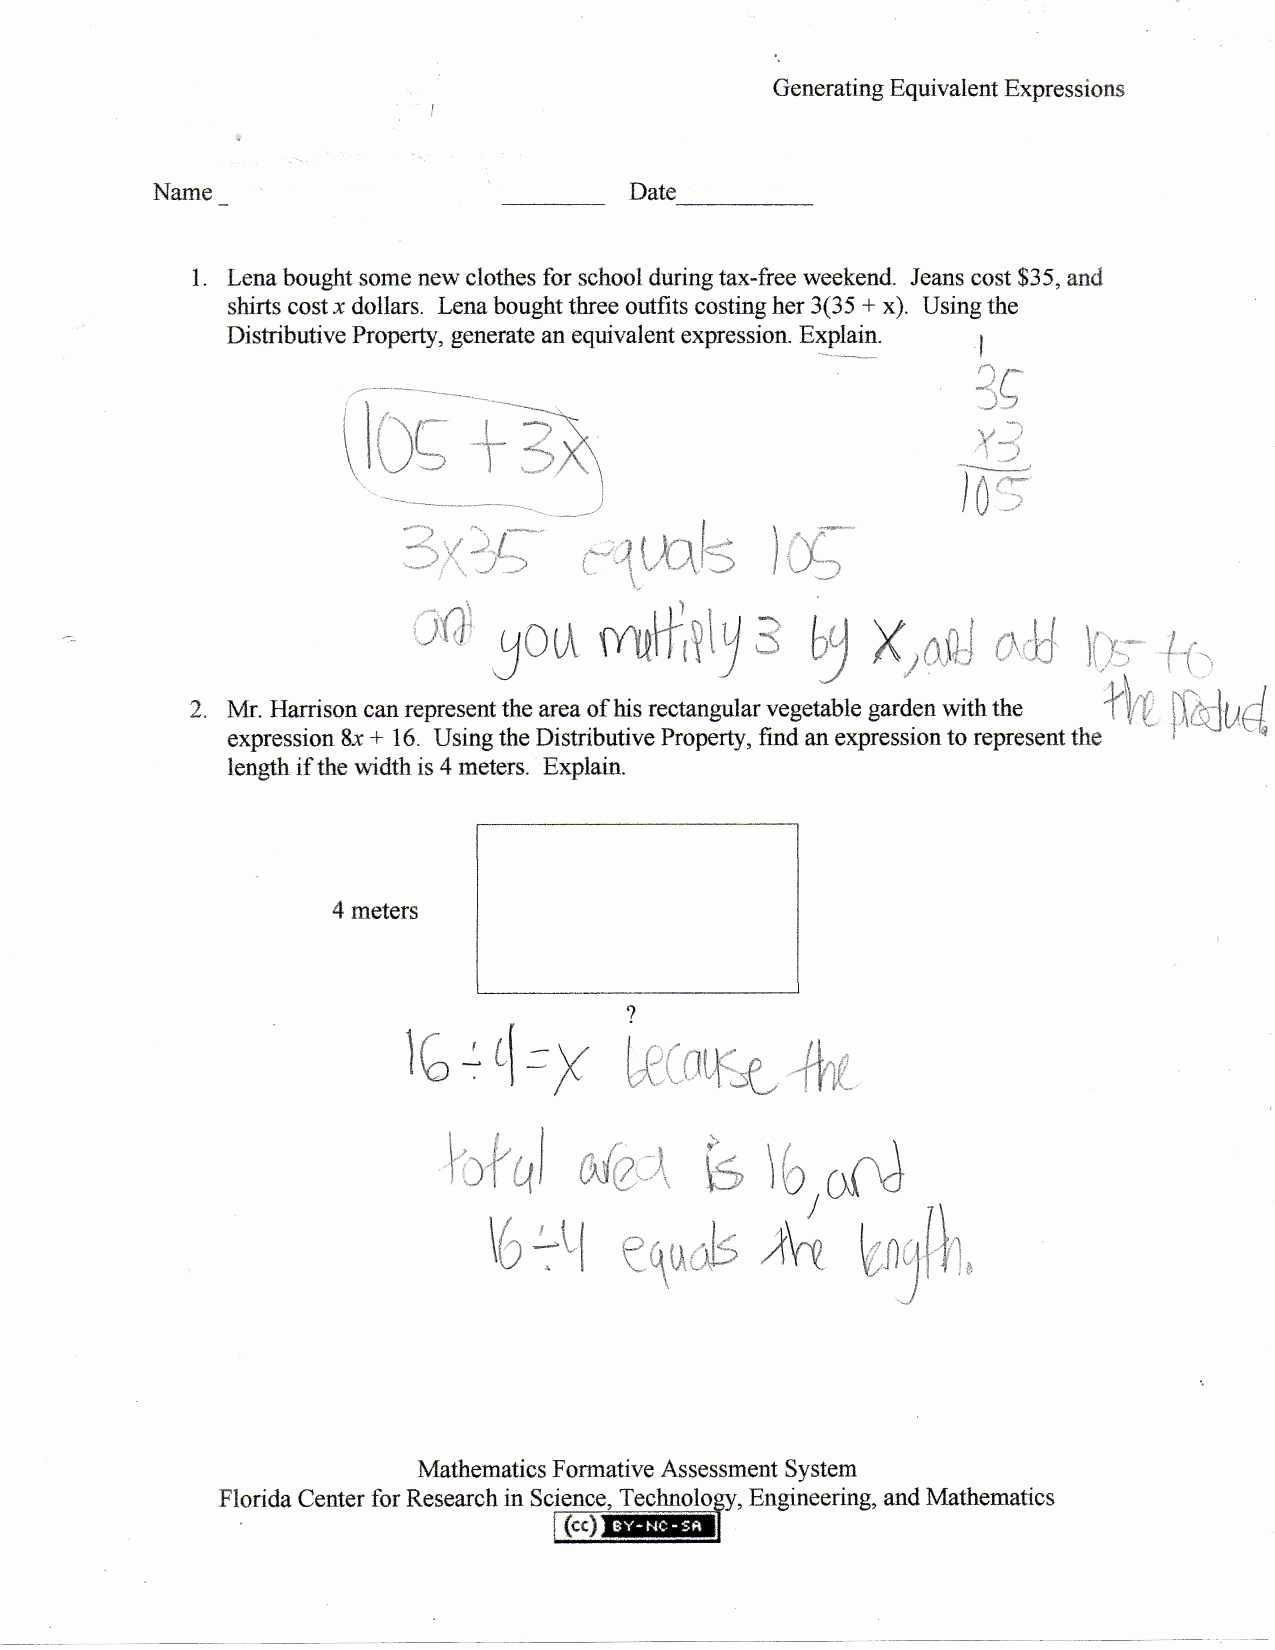 Equivalent Expressions Worksheet Also Fine Sixth Maths Frieze Math Worksheets Ideas Turkishmedals